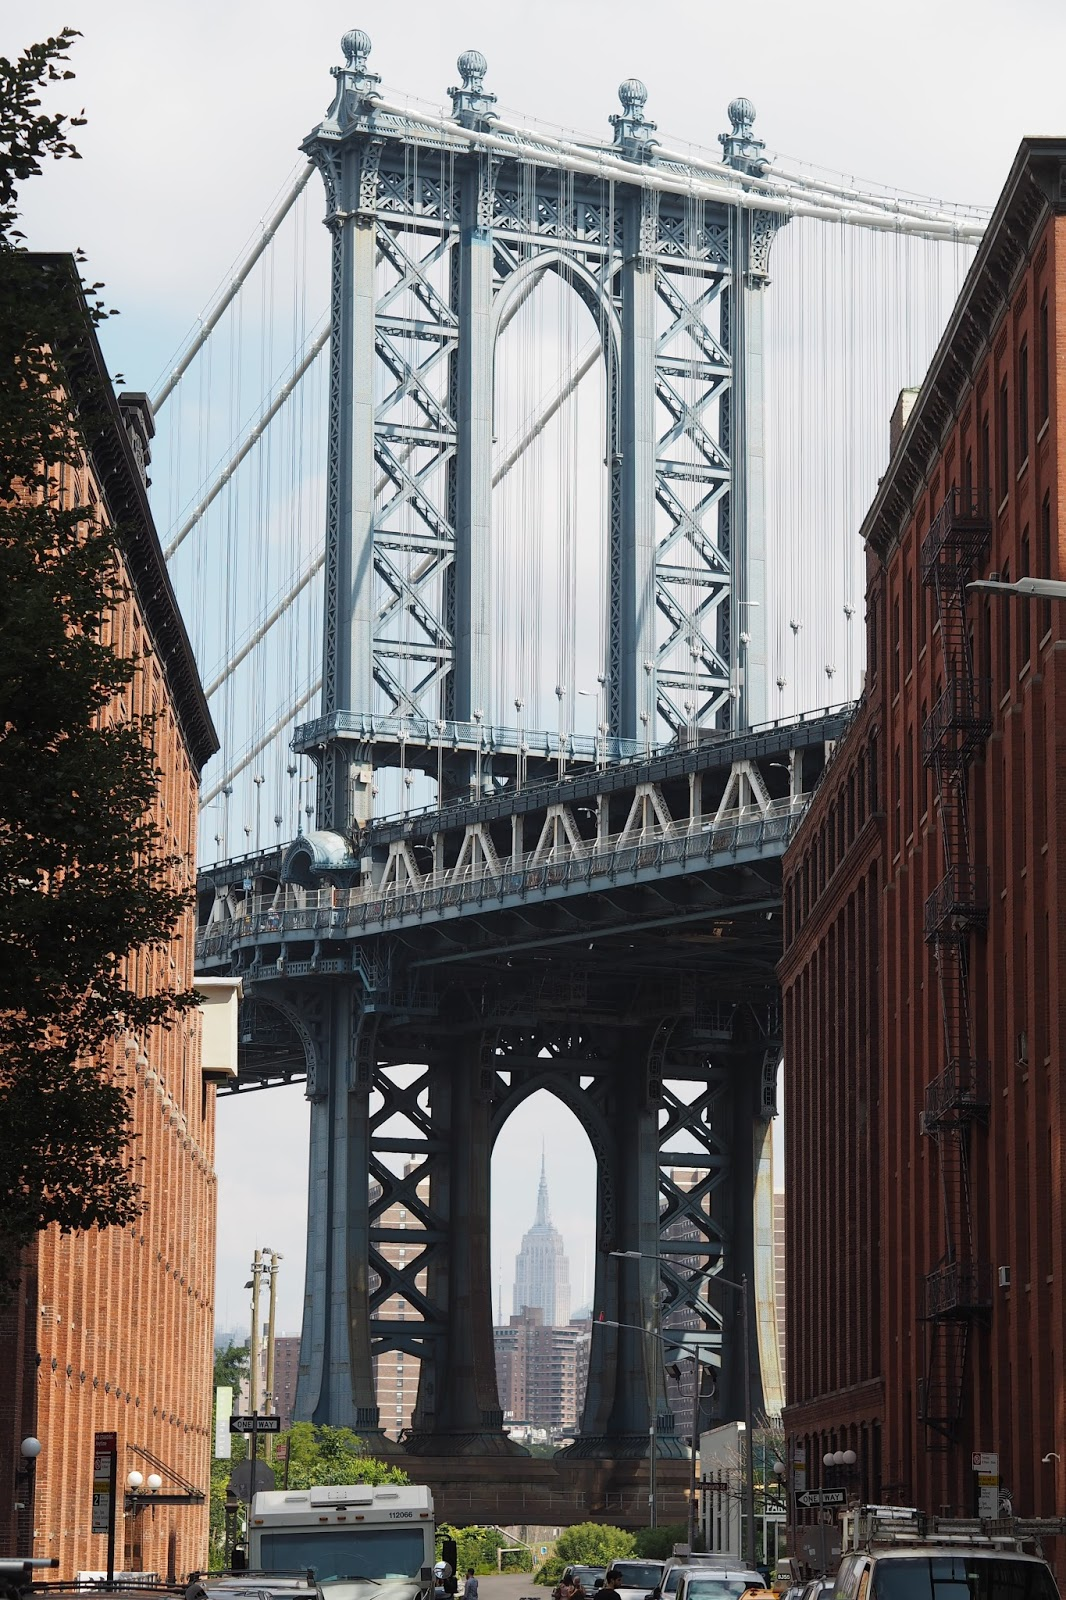 The Manhattan bridge view from Dumbo